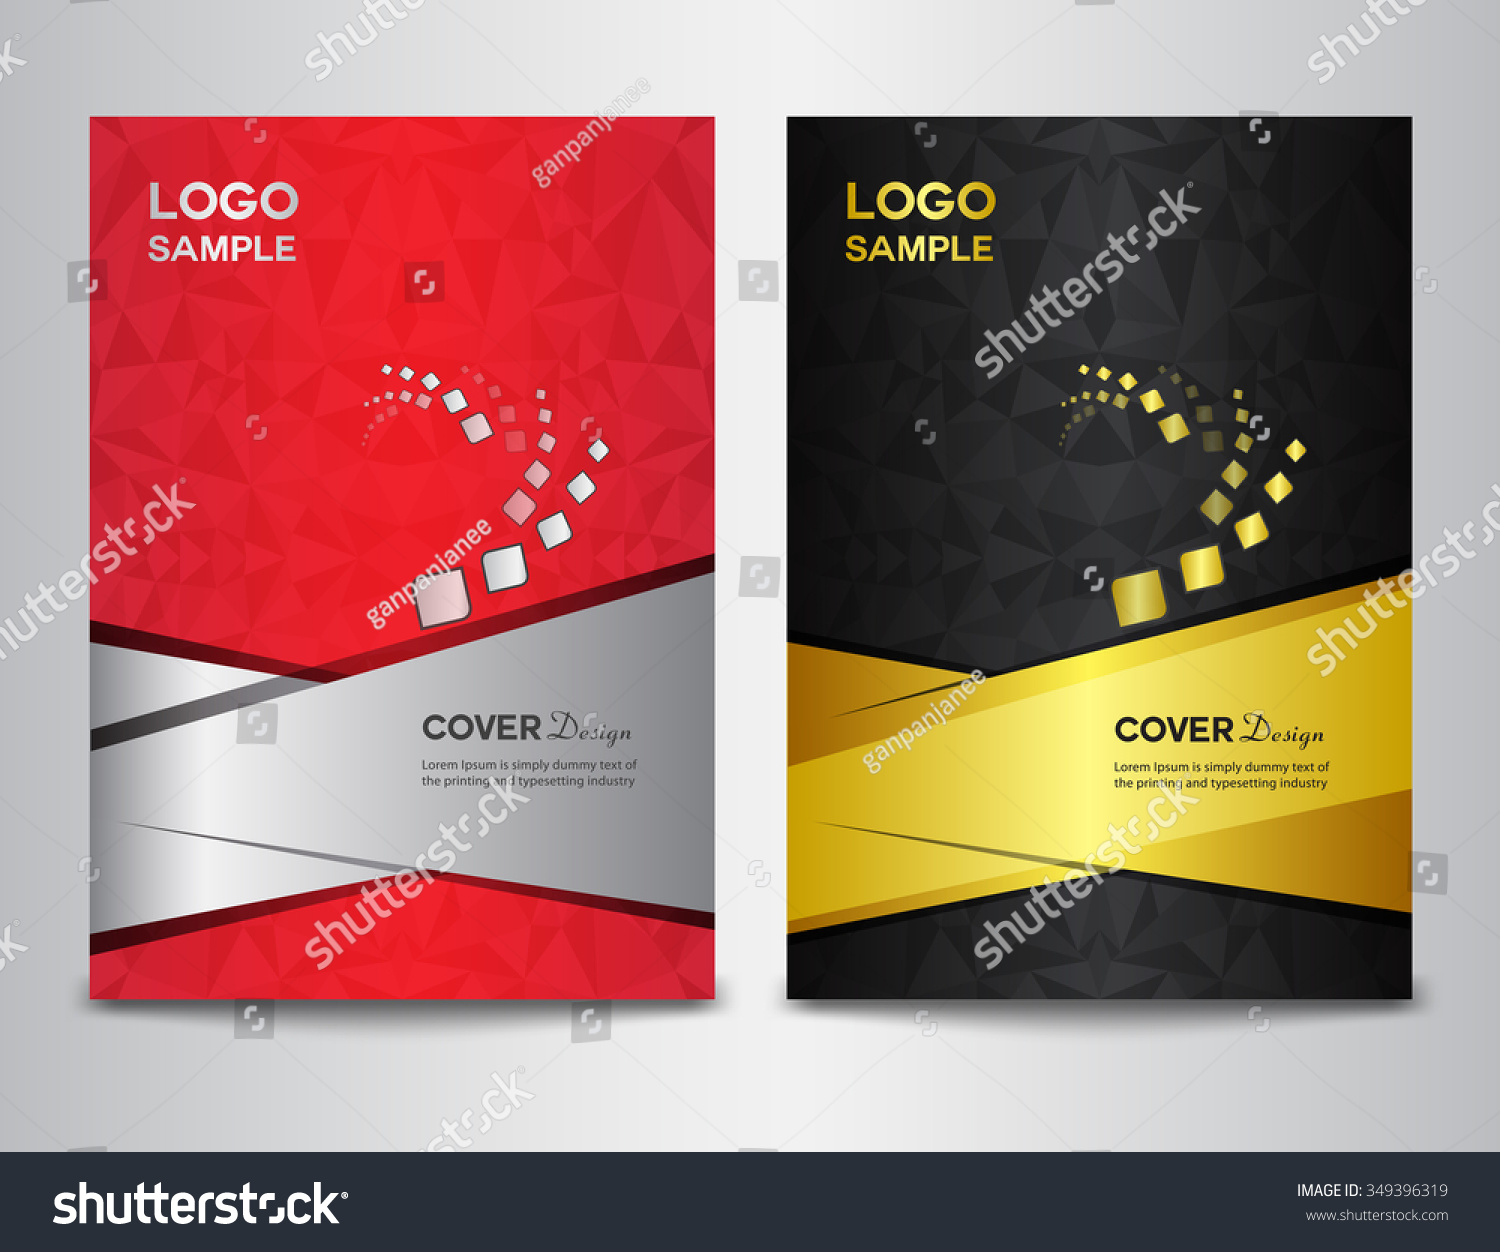 set cover design template vector illustration stock vector set cover design template vector illustration brochure flyer annual report layout book